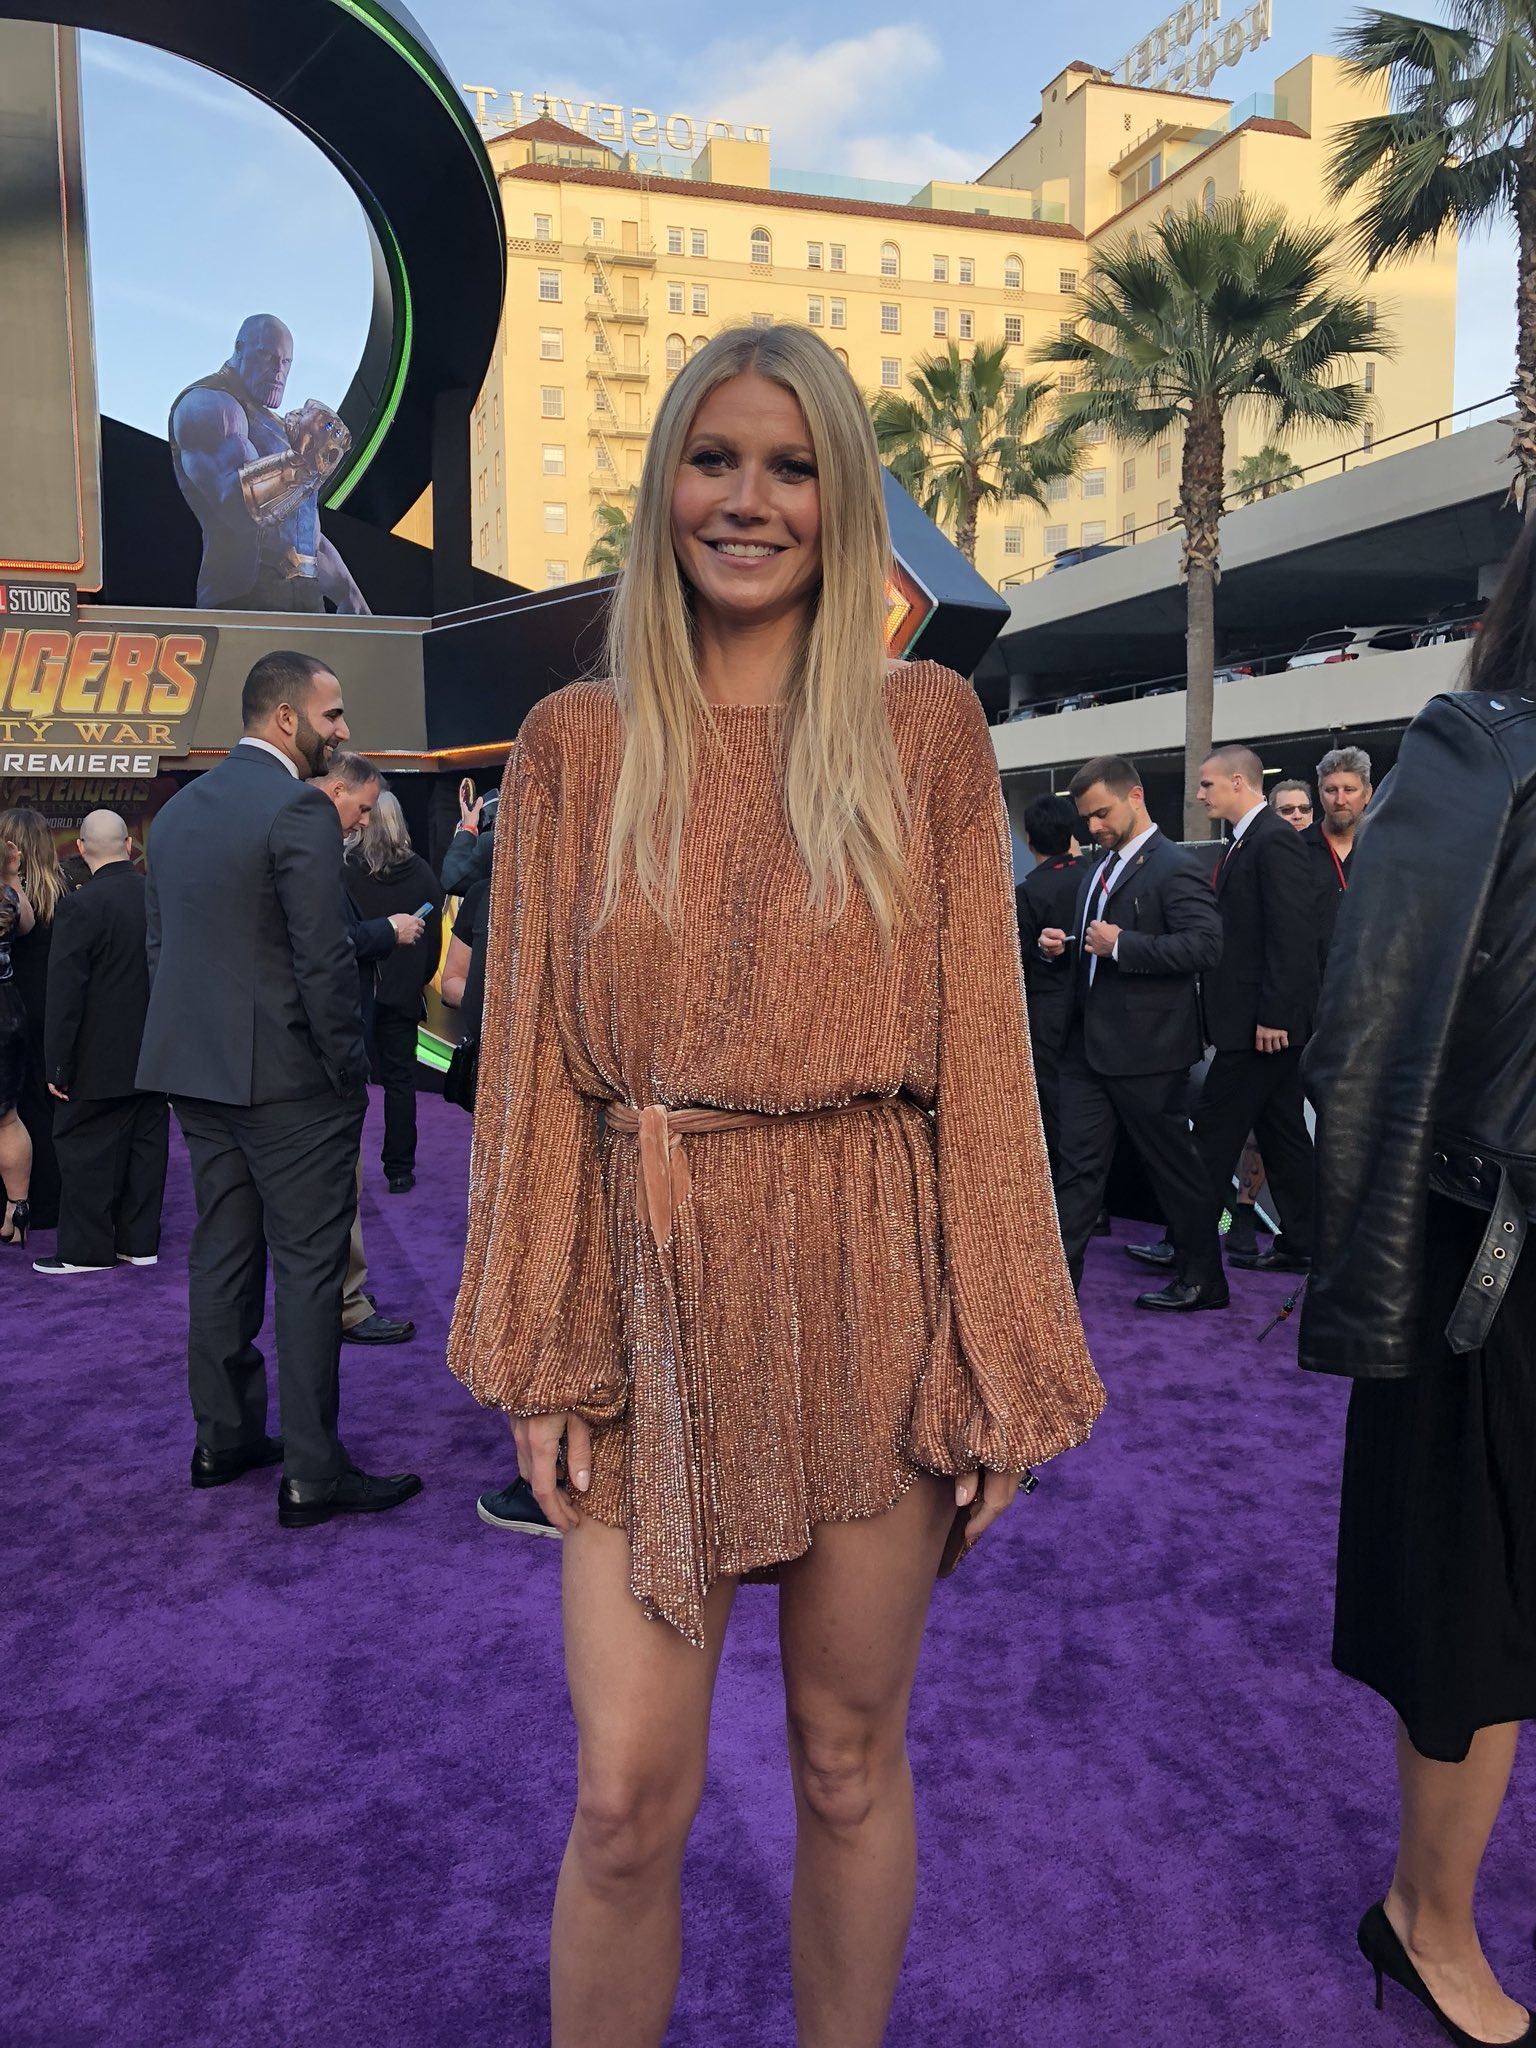 .@GwynethPaltrow glows on the red carpet. #InfinityWar https://t.co/mdEQtBqyKI